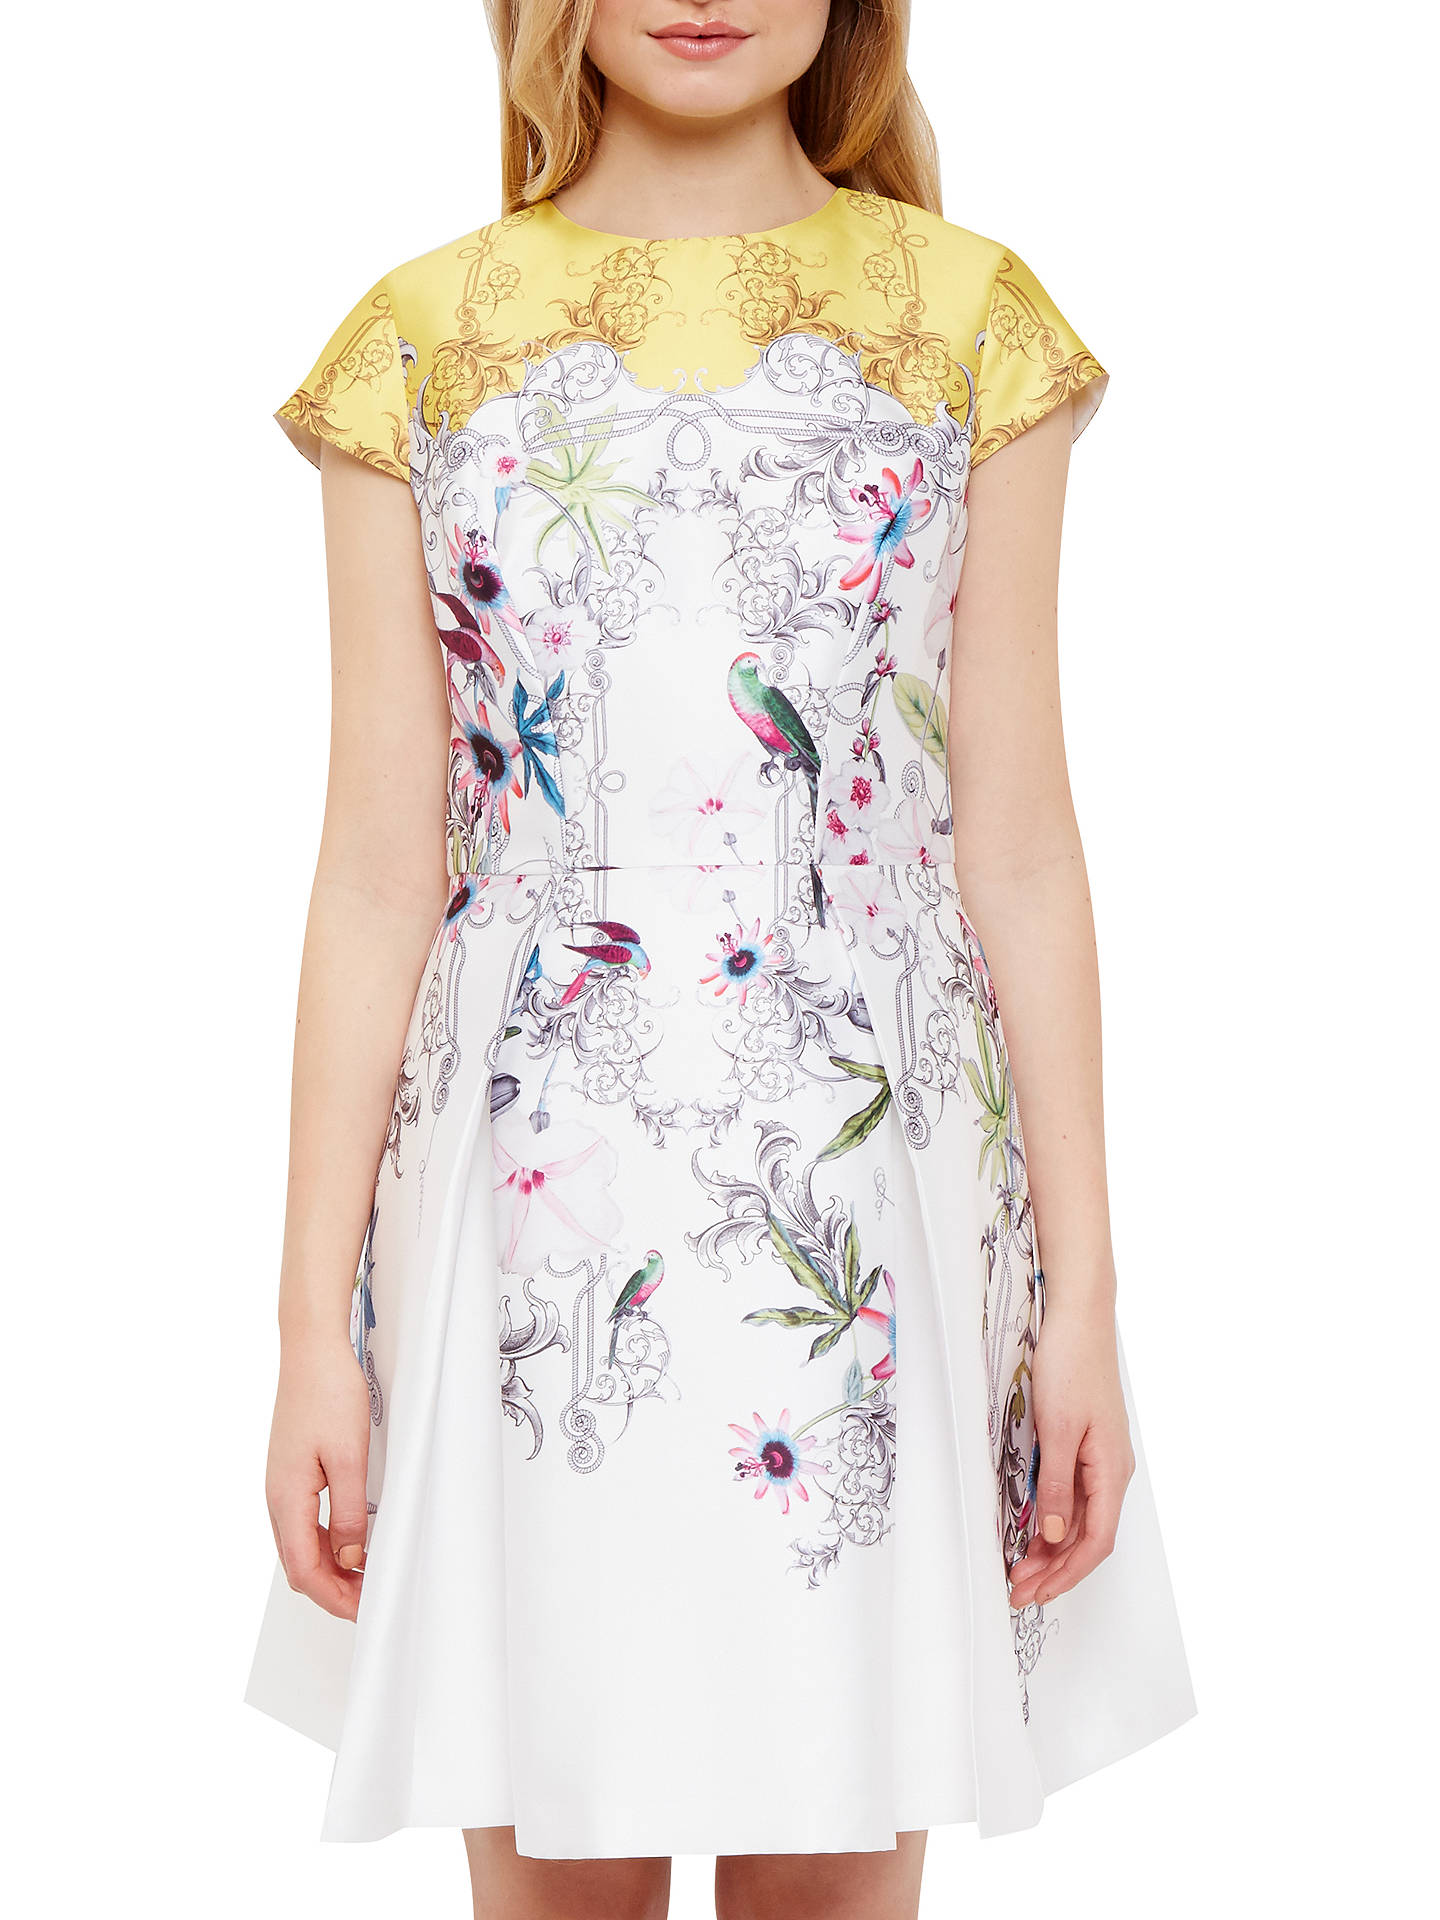 39d1a3cb974 Buy Ted Baker Reliat Passion Flower Skater Dress